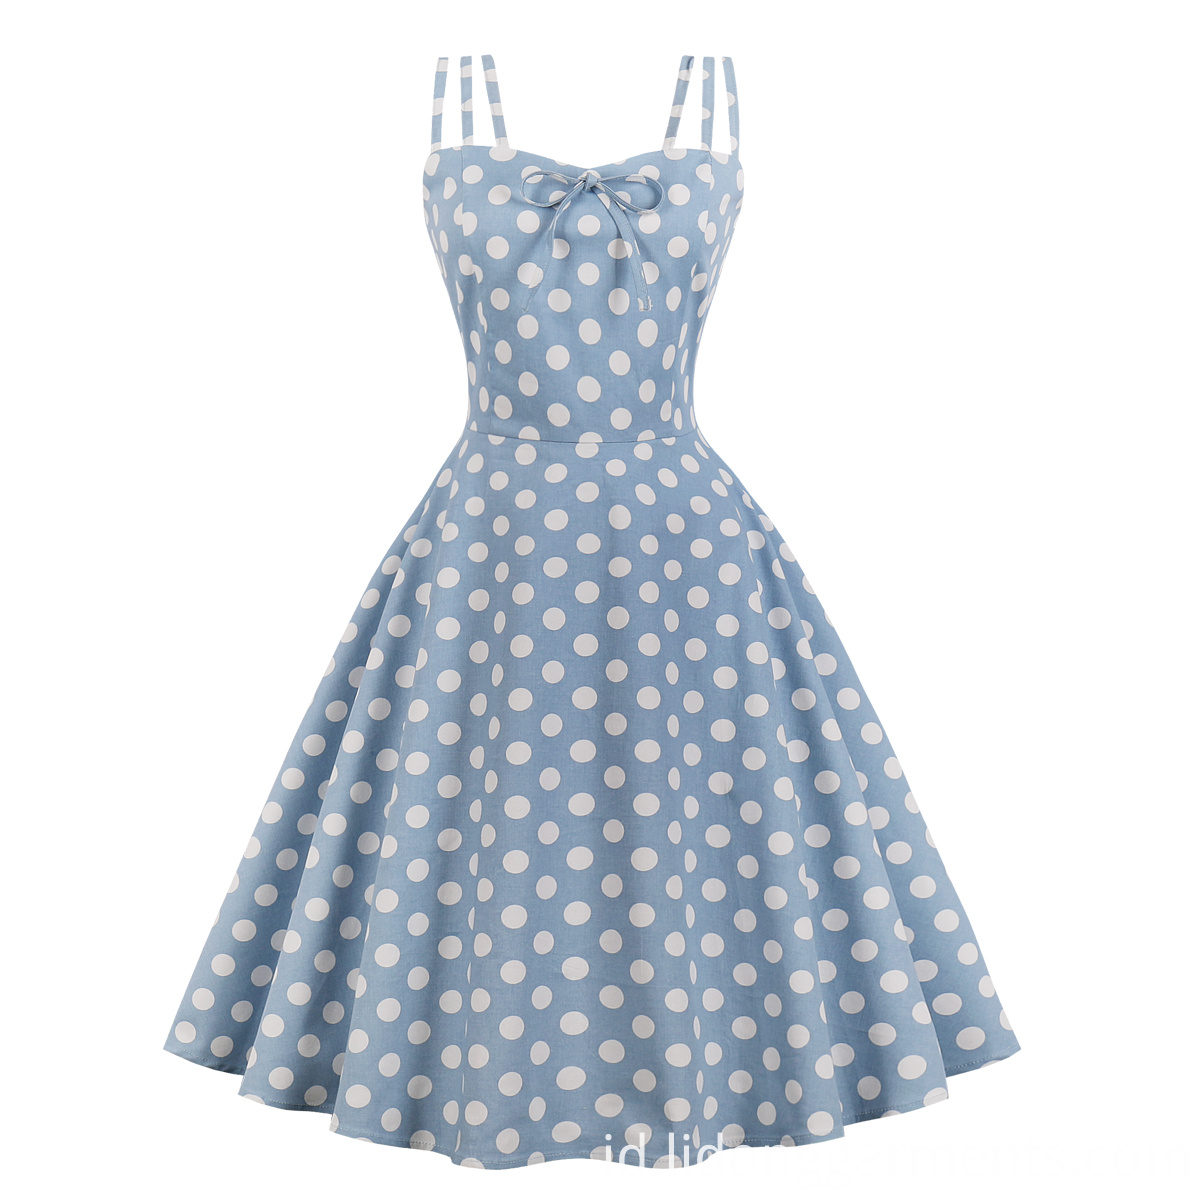 Retro 50s Polka Dot Dress